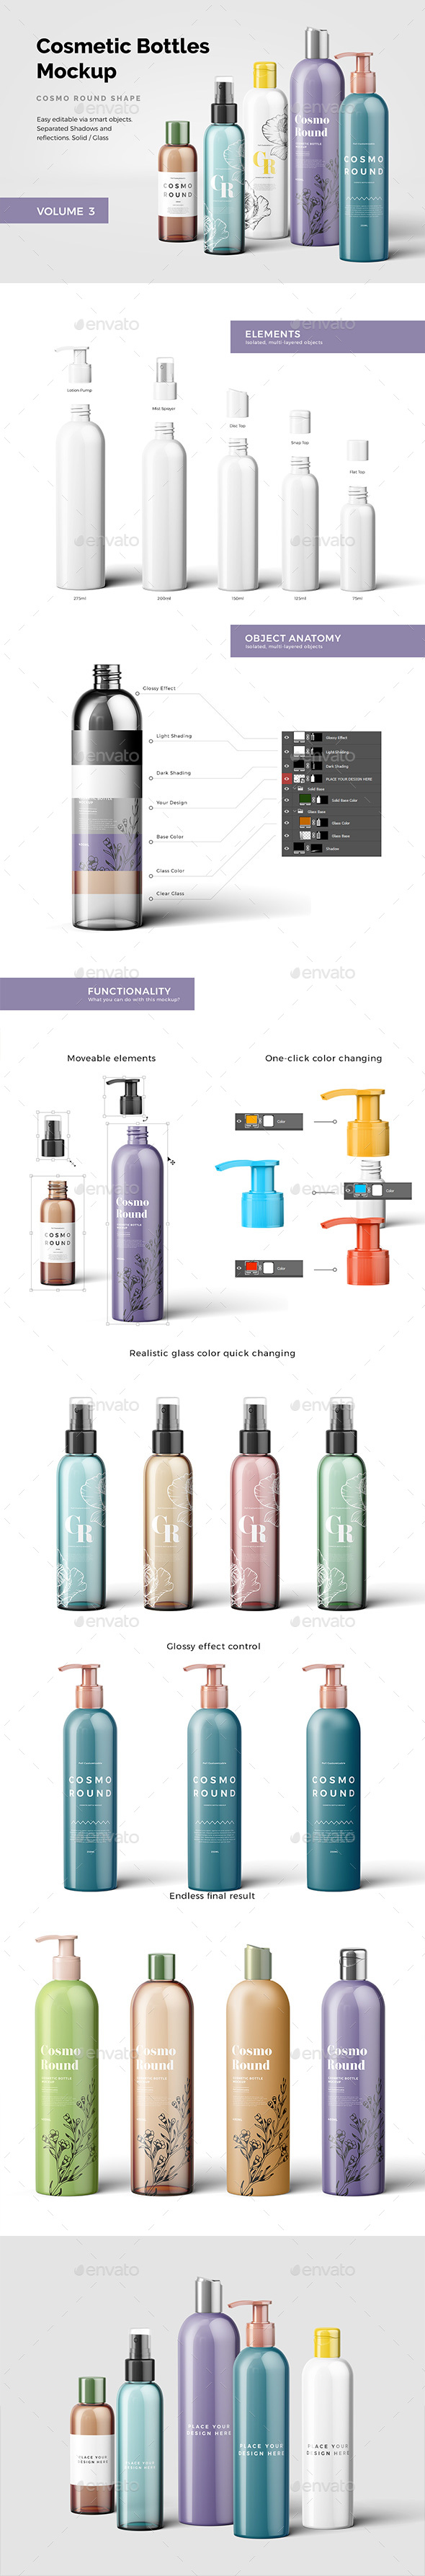 Cosmetic Bottles Mockup Vol.3 - Beauty Packaging